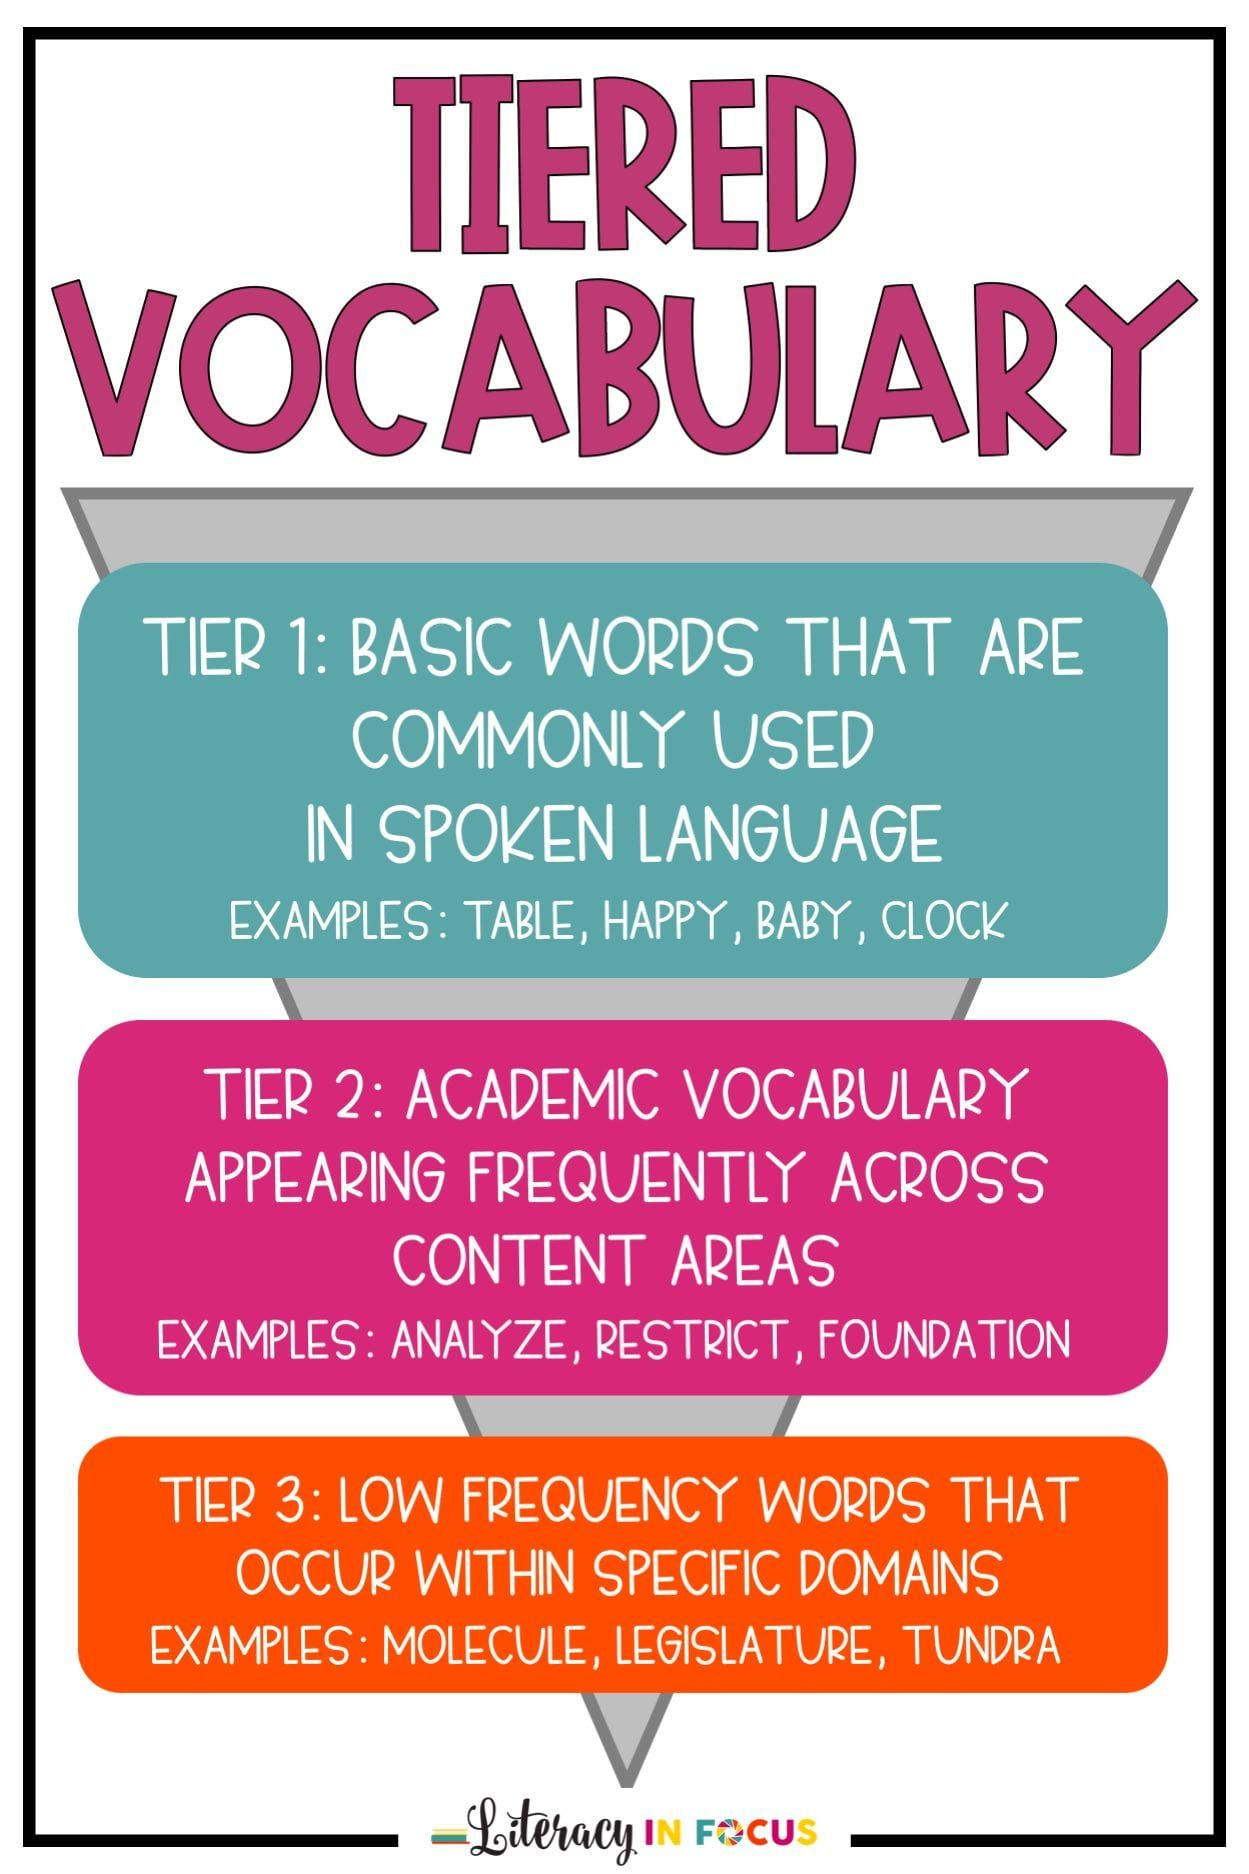 Tiered Vocabulary What is it, and Why Does It Matter